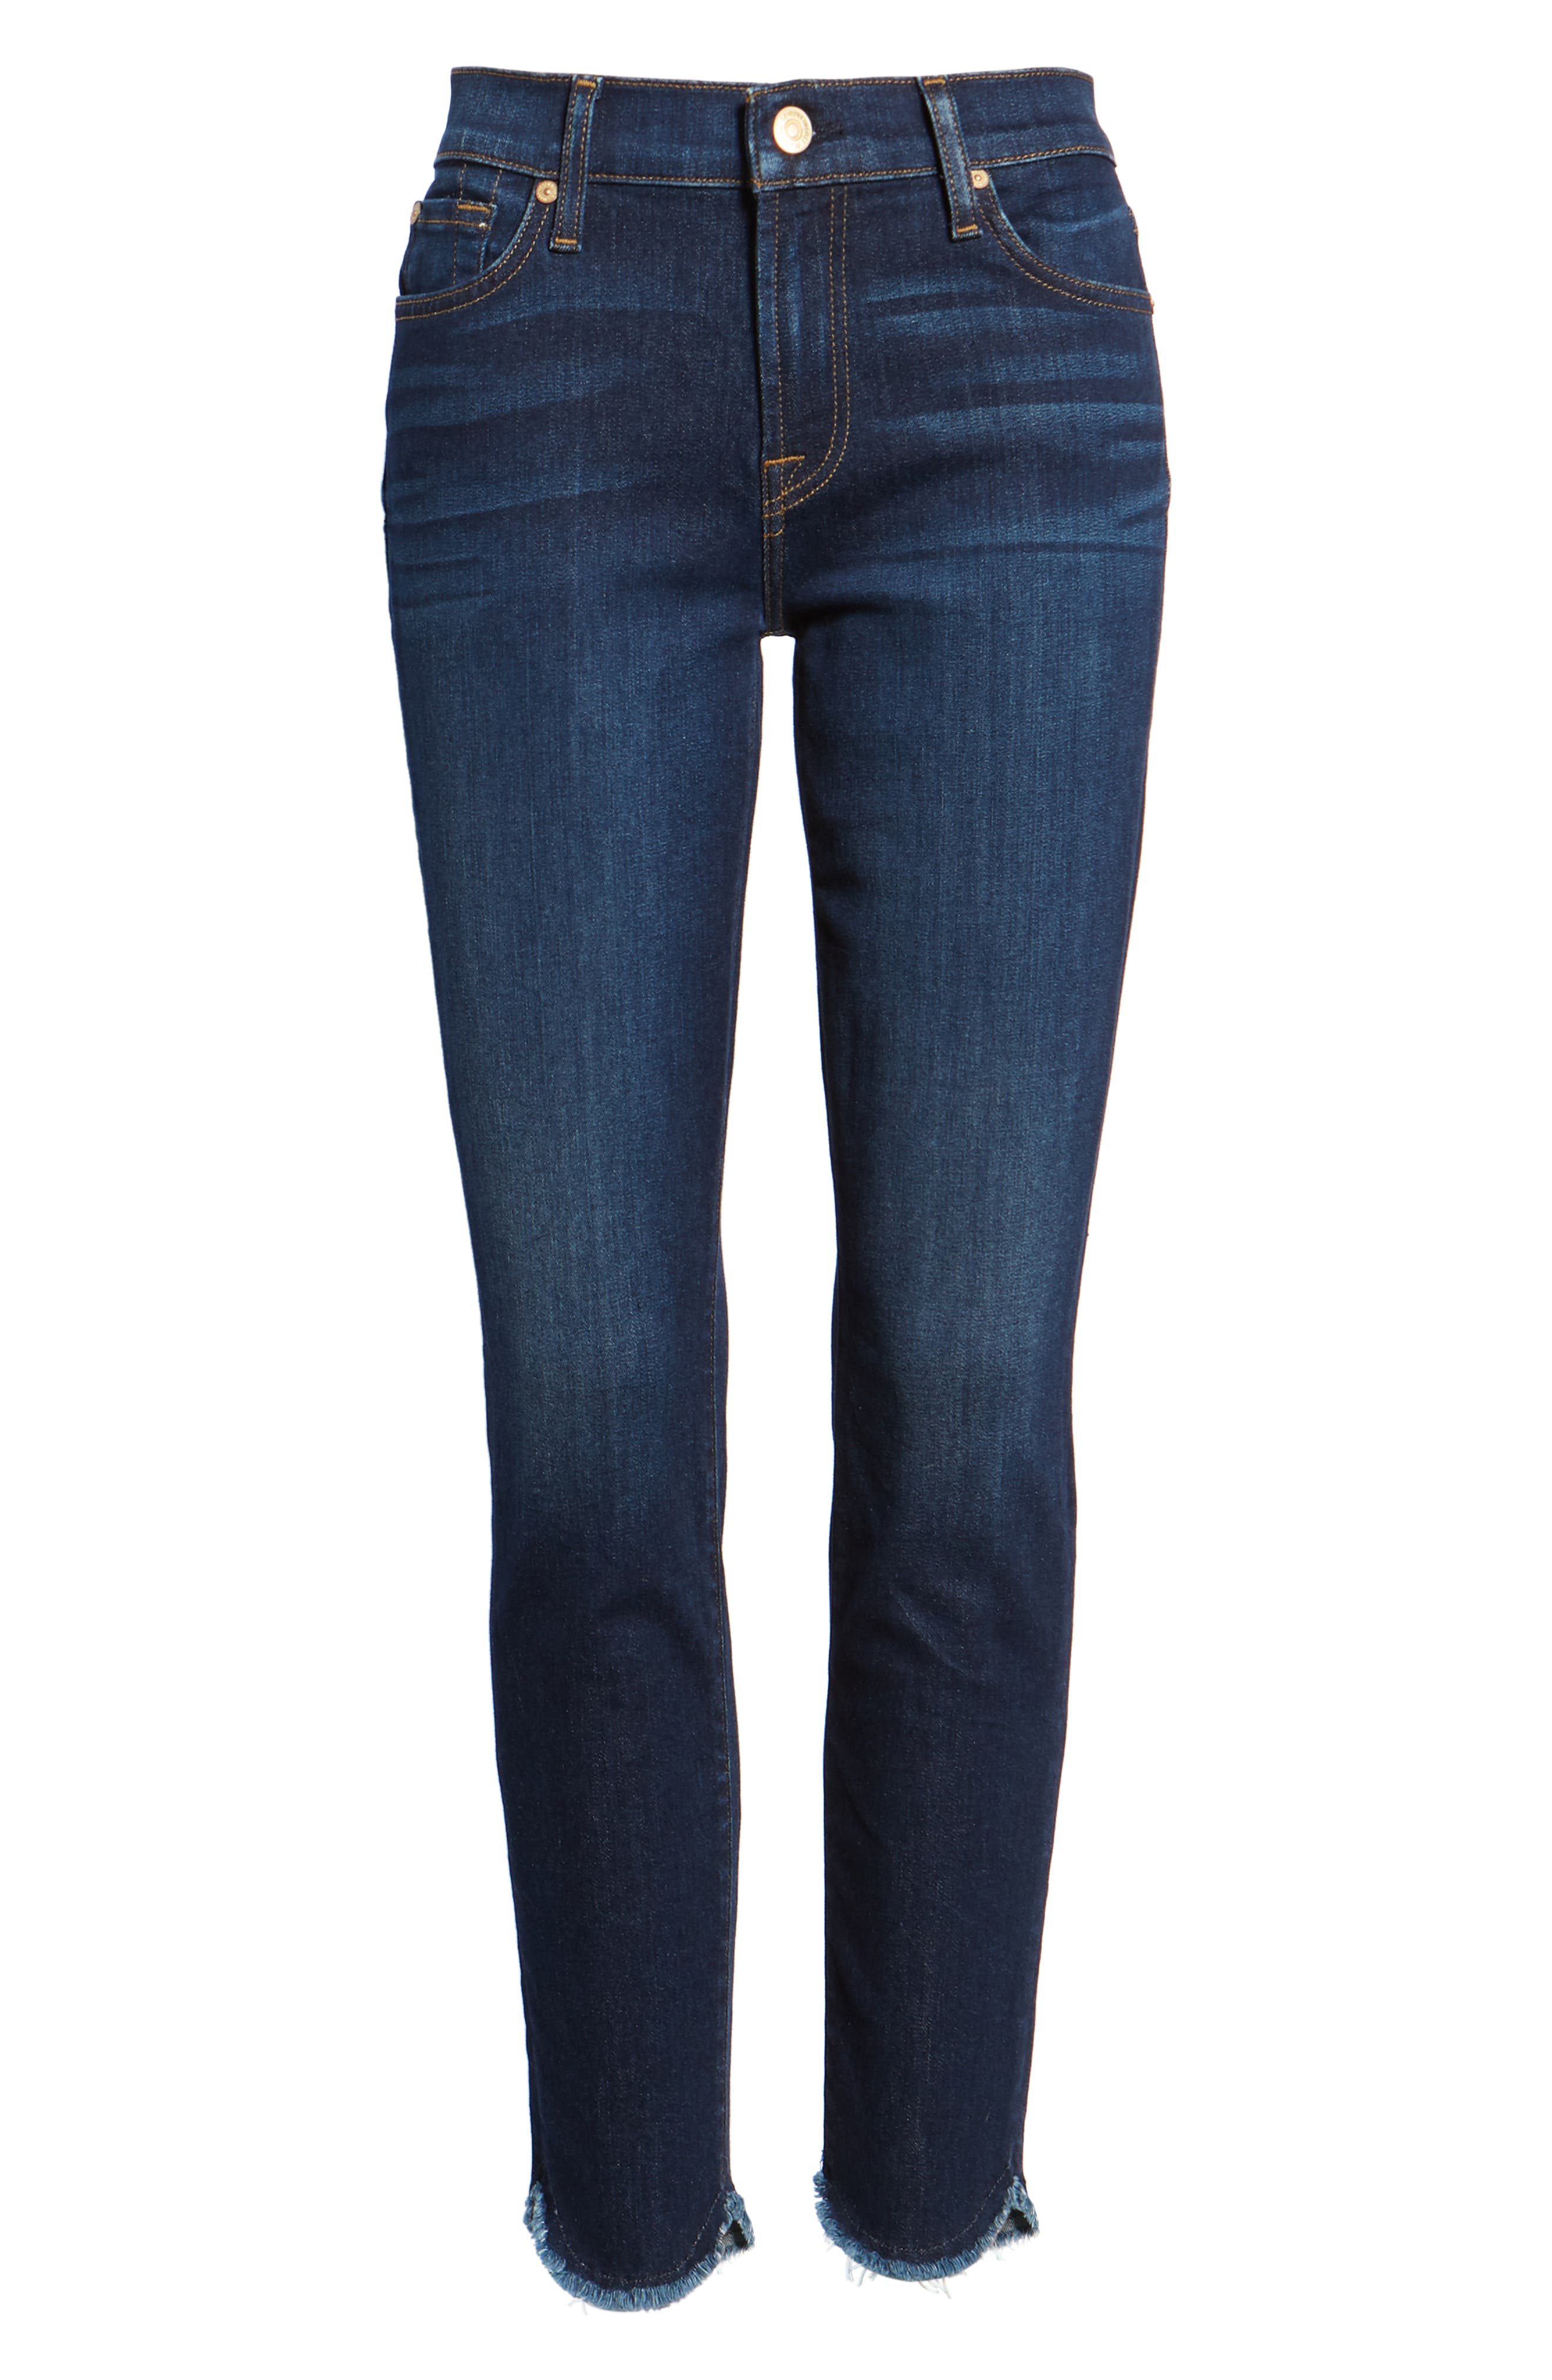 Scallop Hem Ankle Skinny Jeans,                             Alternate thumbnail 7, color,                             MIDNIGHT MOON